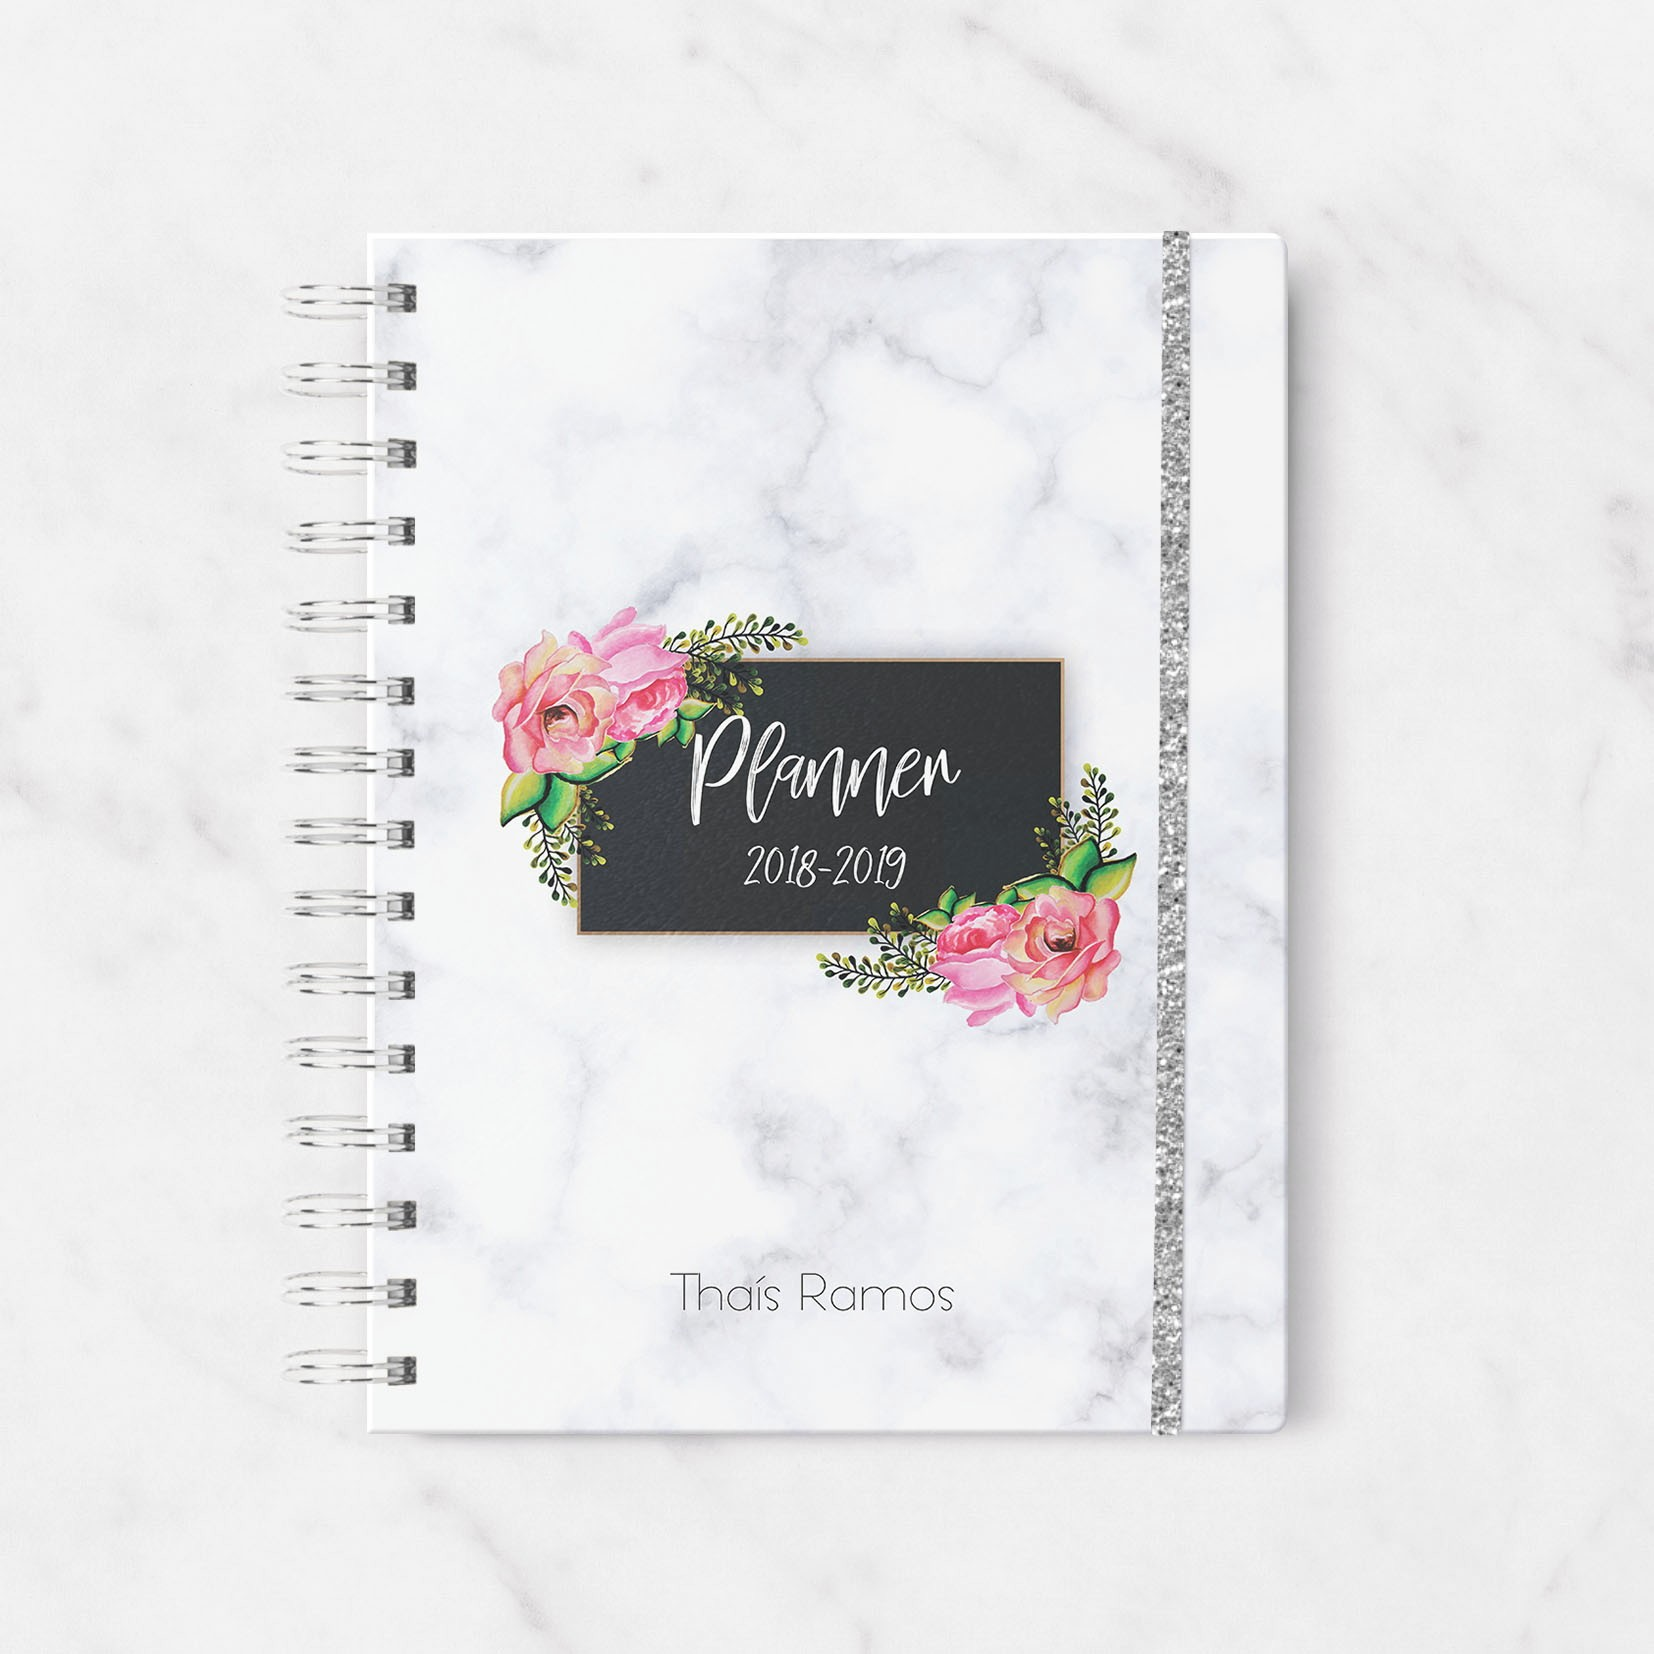 Calendario 2019 Com todas as Datas Comemorativas Más Recientes Life Planner Personalizado Floral Marmorizado No Elo7 Of Calendario 2019 Com todas as Datas Comemorativas Más Arriba-a-fecha Portal Do Governo Do Estado Do Piau­